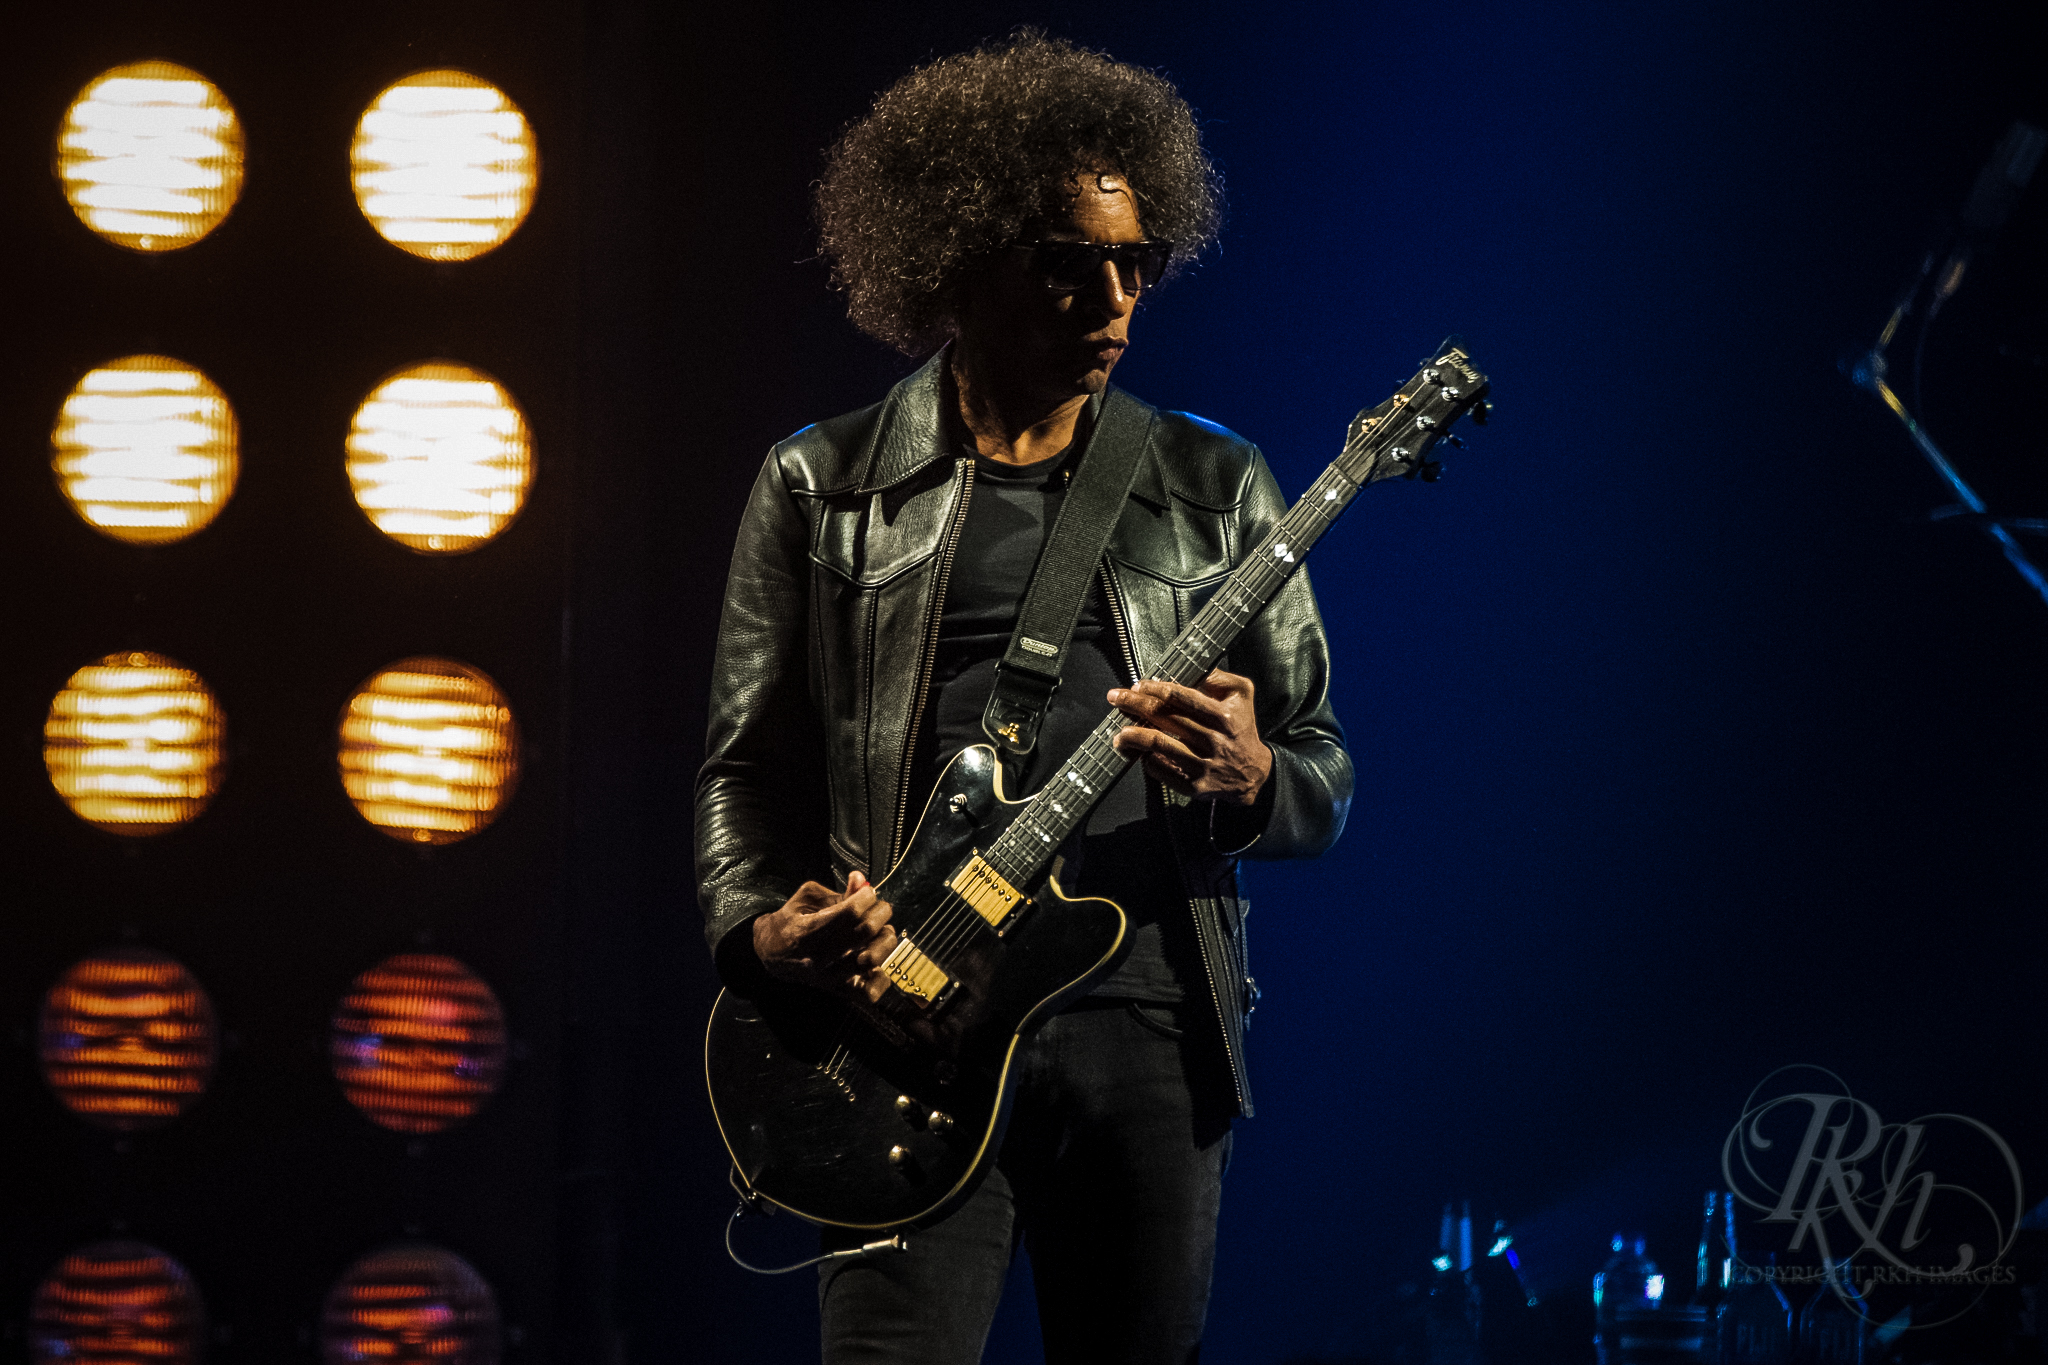 Alice in Chains - RKH Images - The Armory - Minneapolis, Minnesota  (9 of 15).jpg